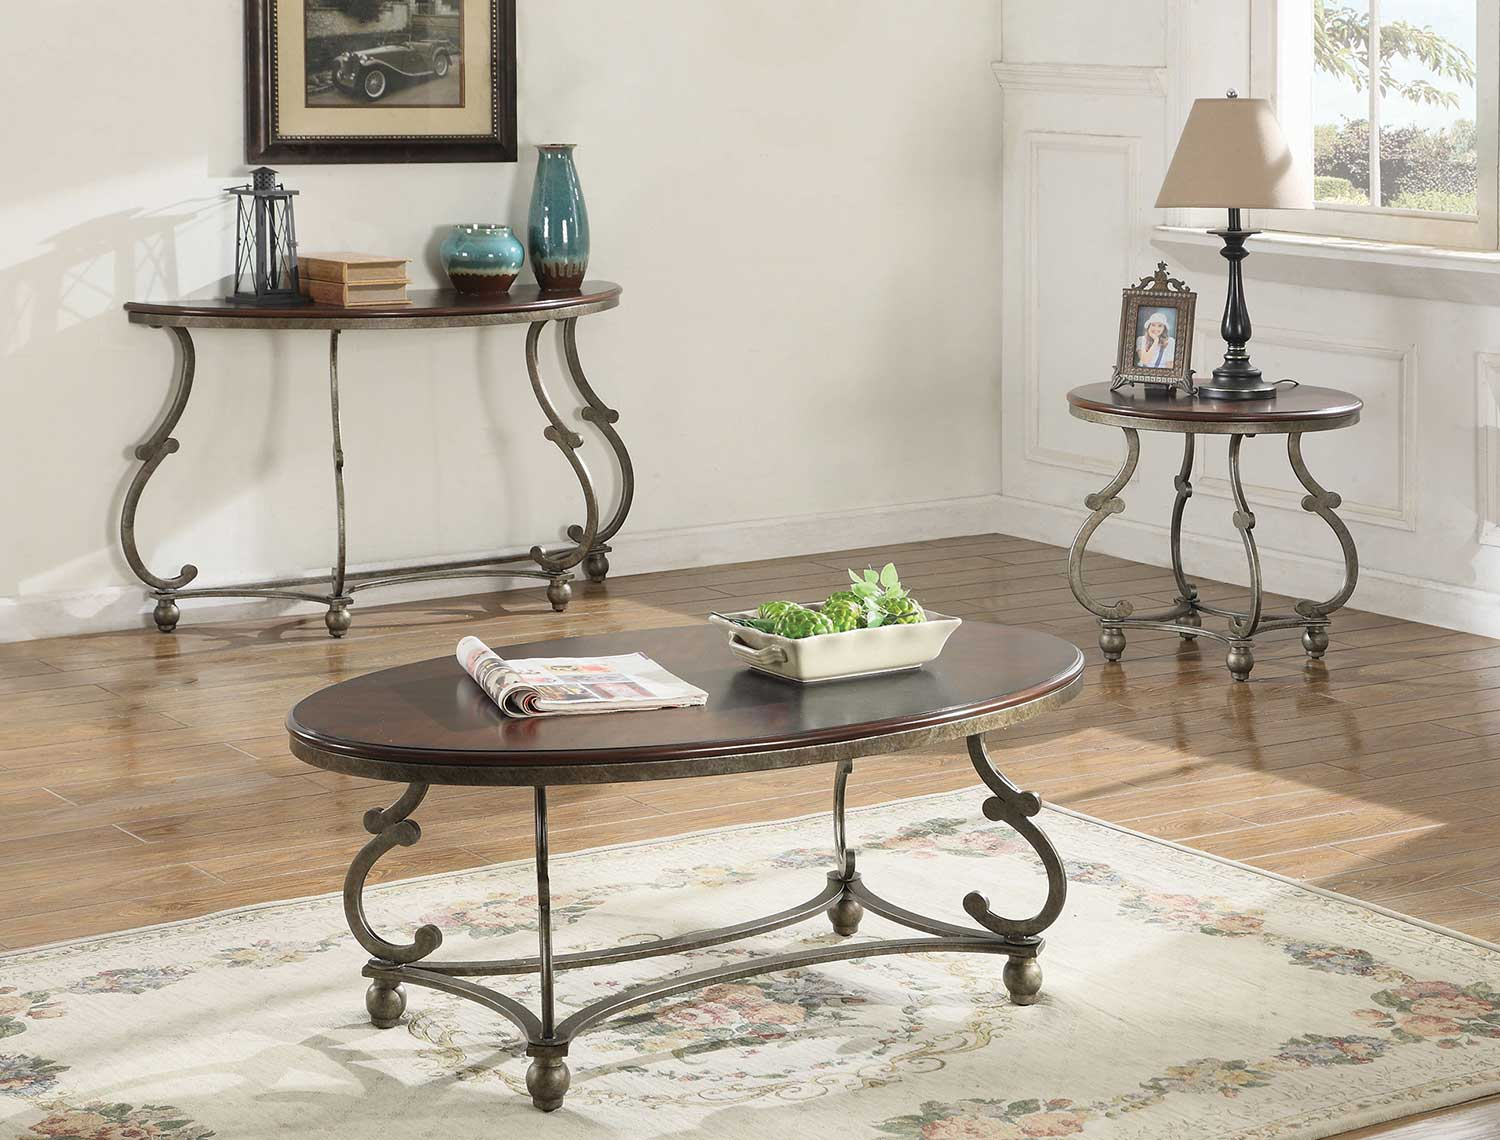 Coaster 720548 Occasional/Coffee Table Set - Cherry Brown/ Antique Pewter & Coaster 720548 Occasional/Coffee Table Set - Cherry Brown/ Antique ...